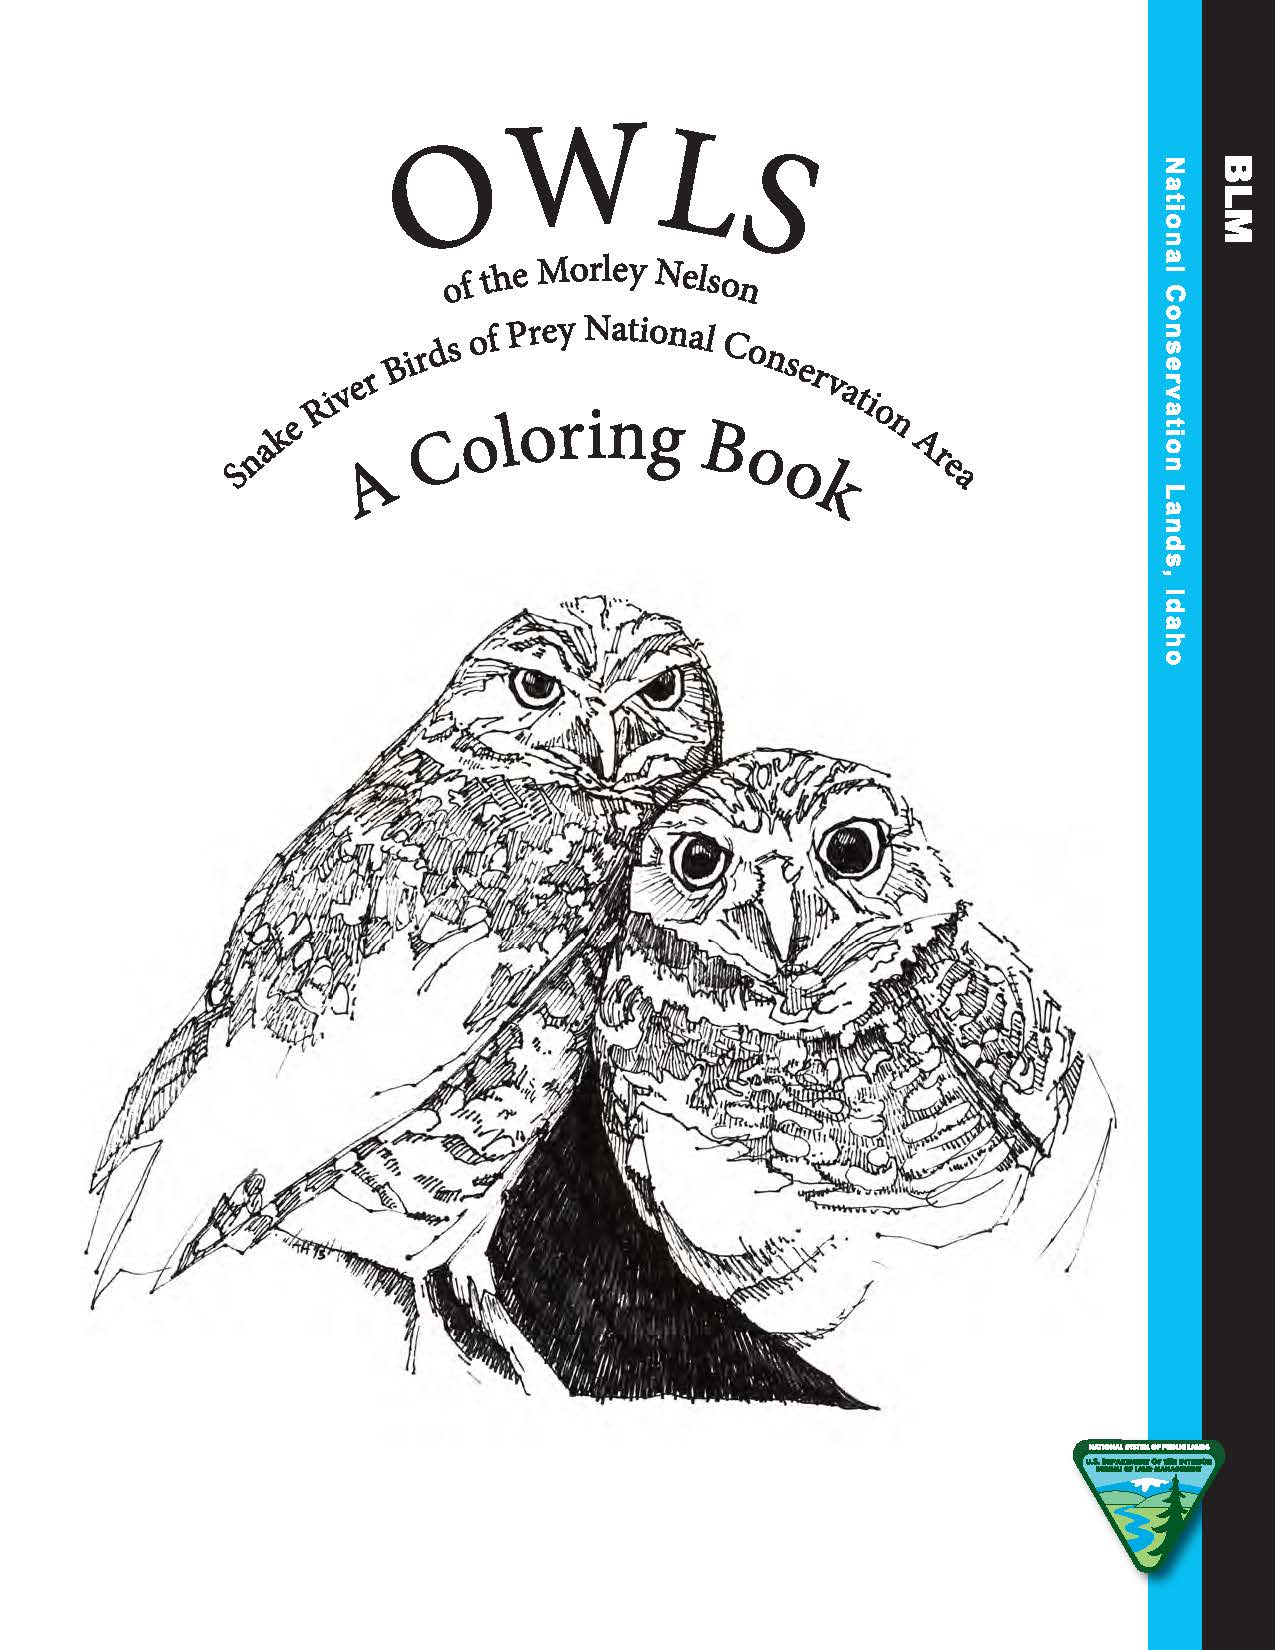 Morley Nelson Snake River Birds Of Prey Owl Coloring Book